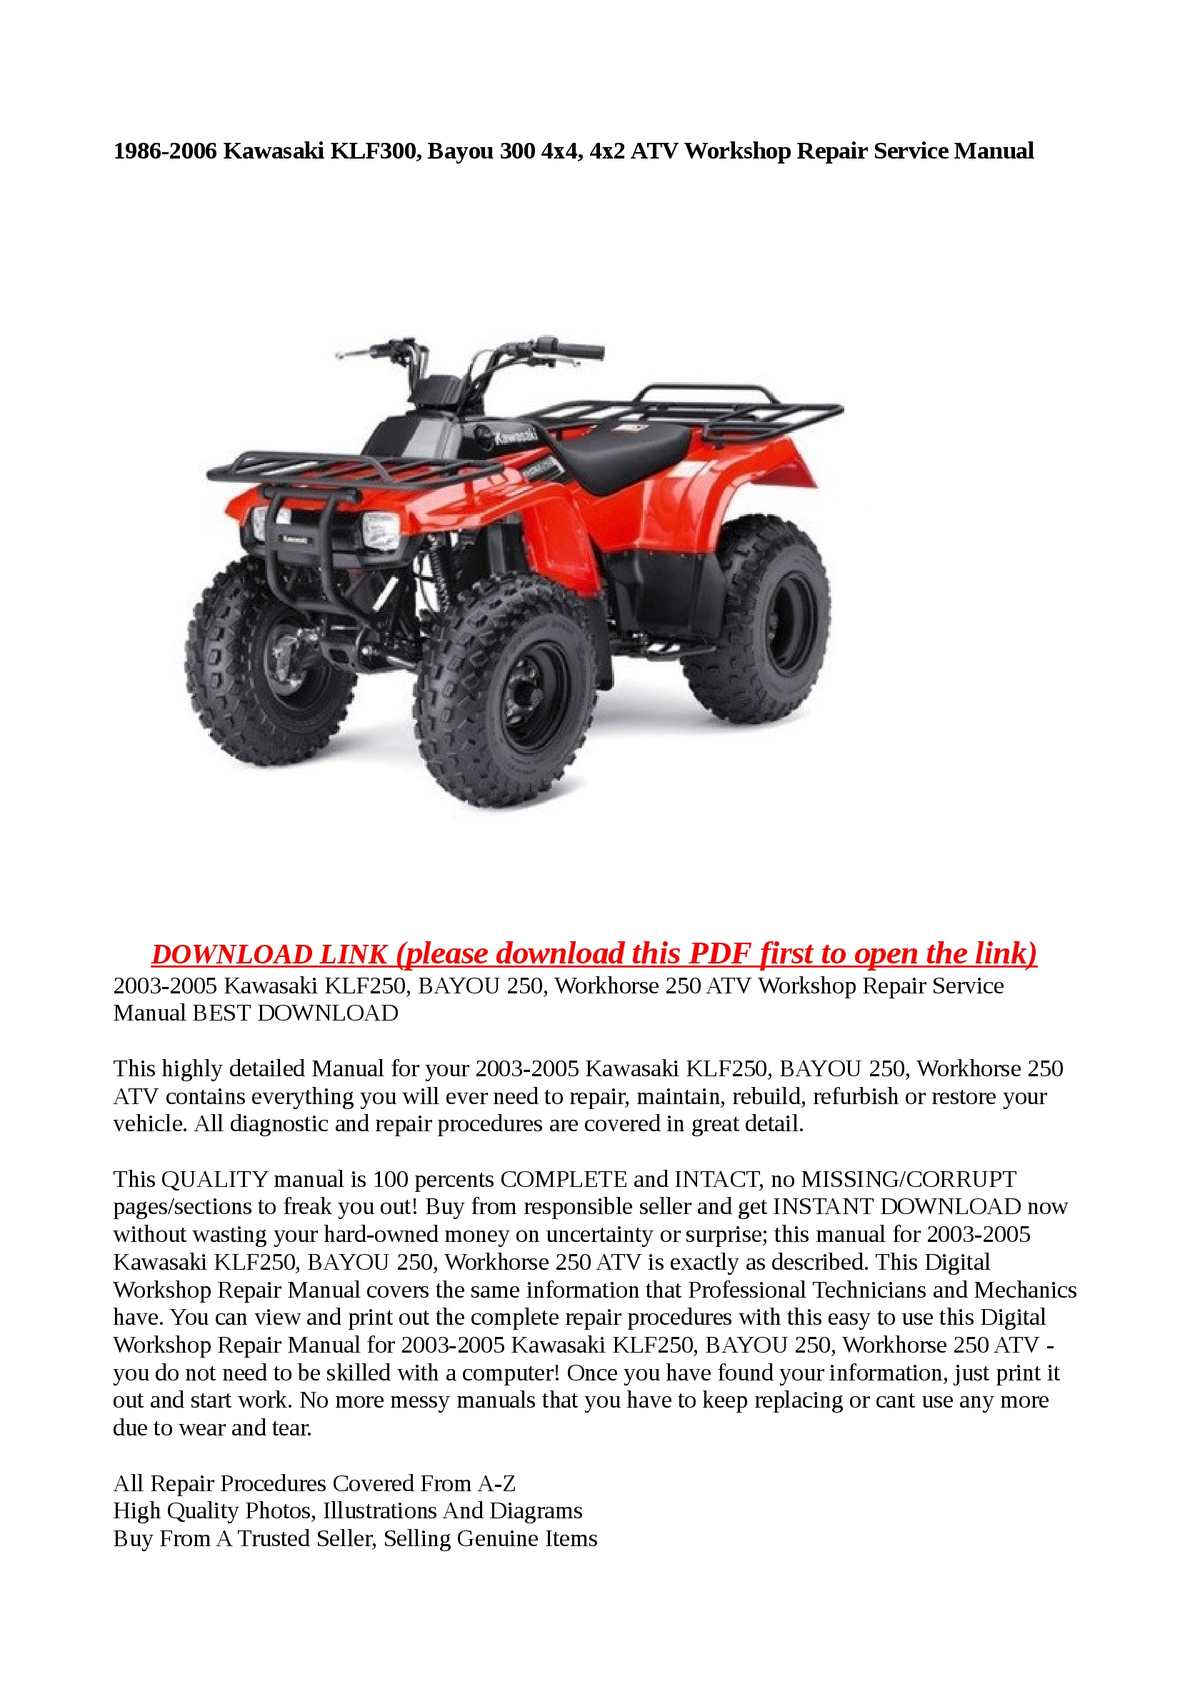 Calaméo - 1986-2006 Kawasaki KLF300, Bayou 300 4x4, 4x2 ATV Workshop Repair  Service Manual